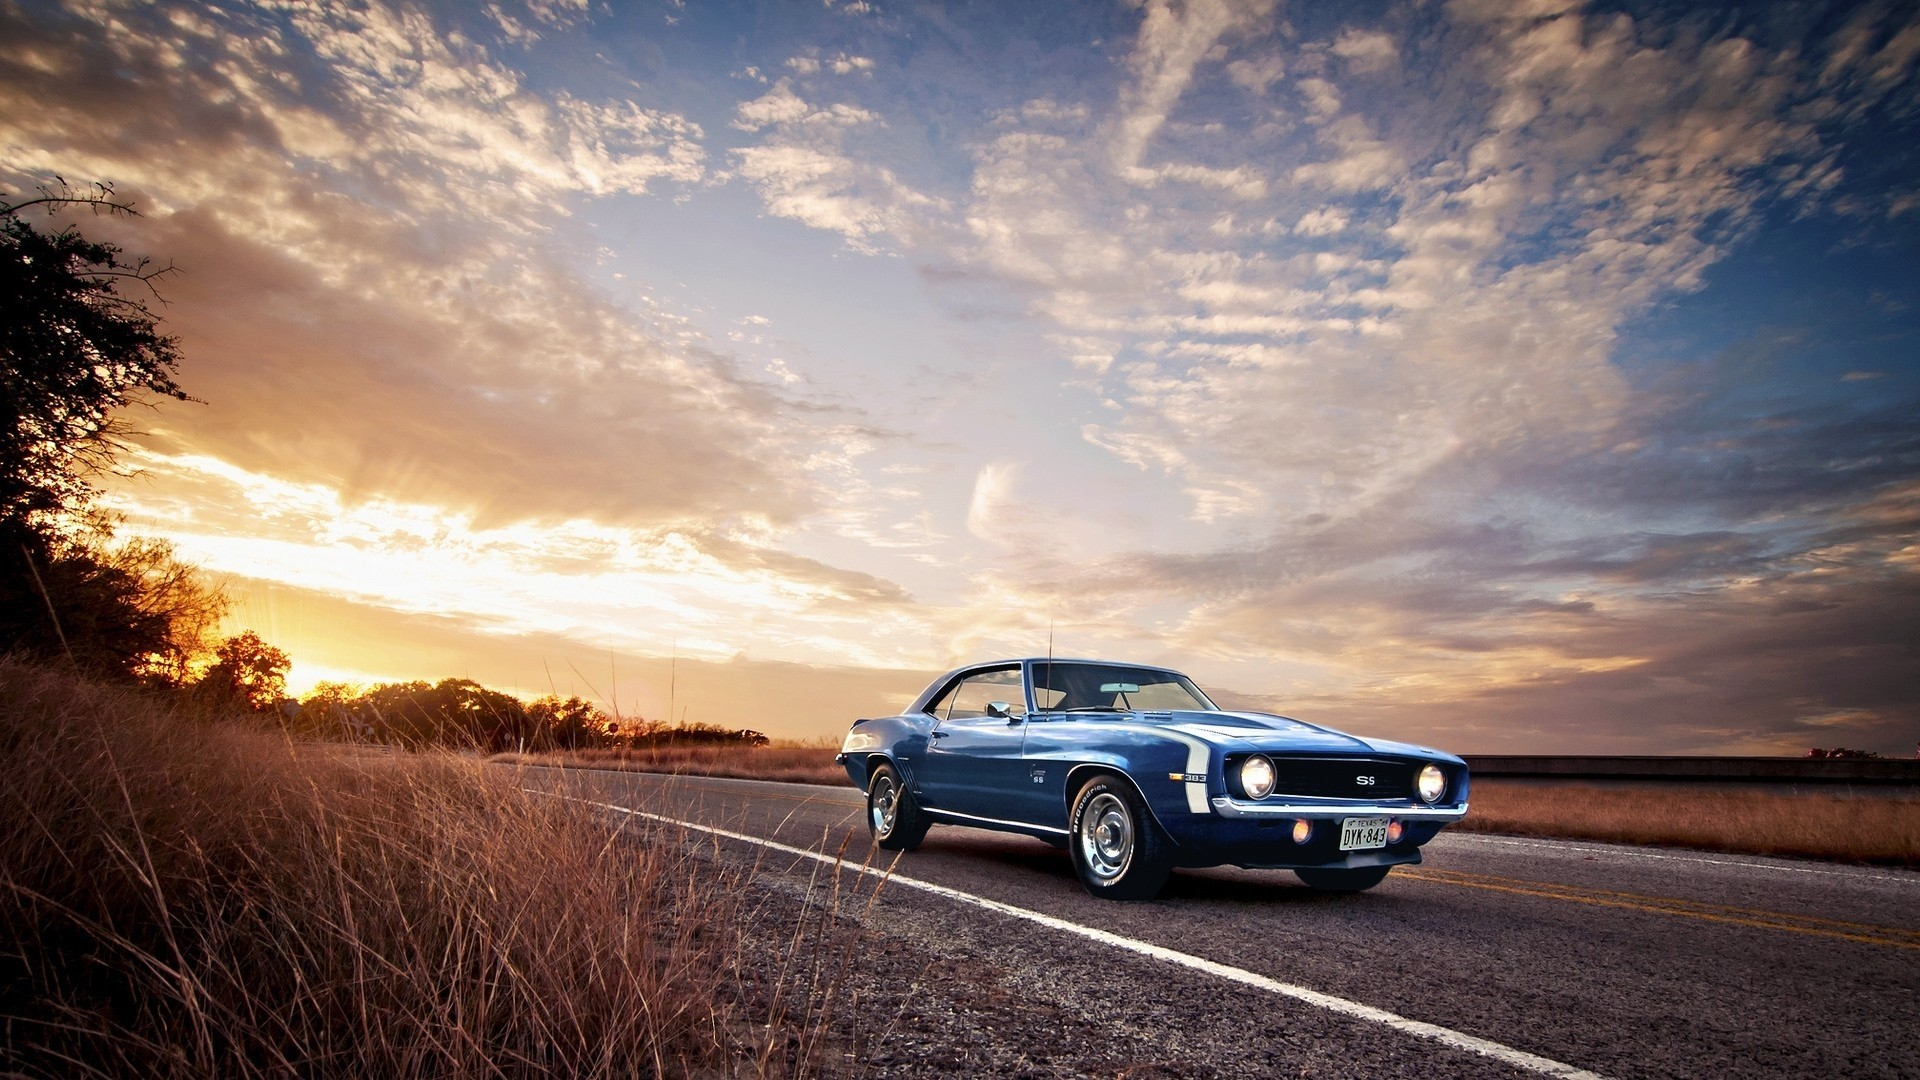 Classic Cars Wallpapers Wallpapertag